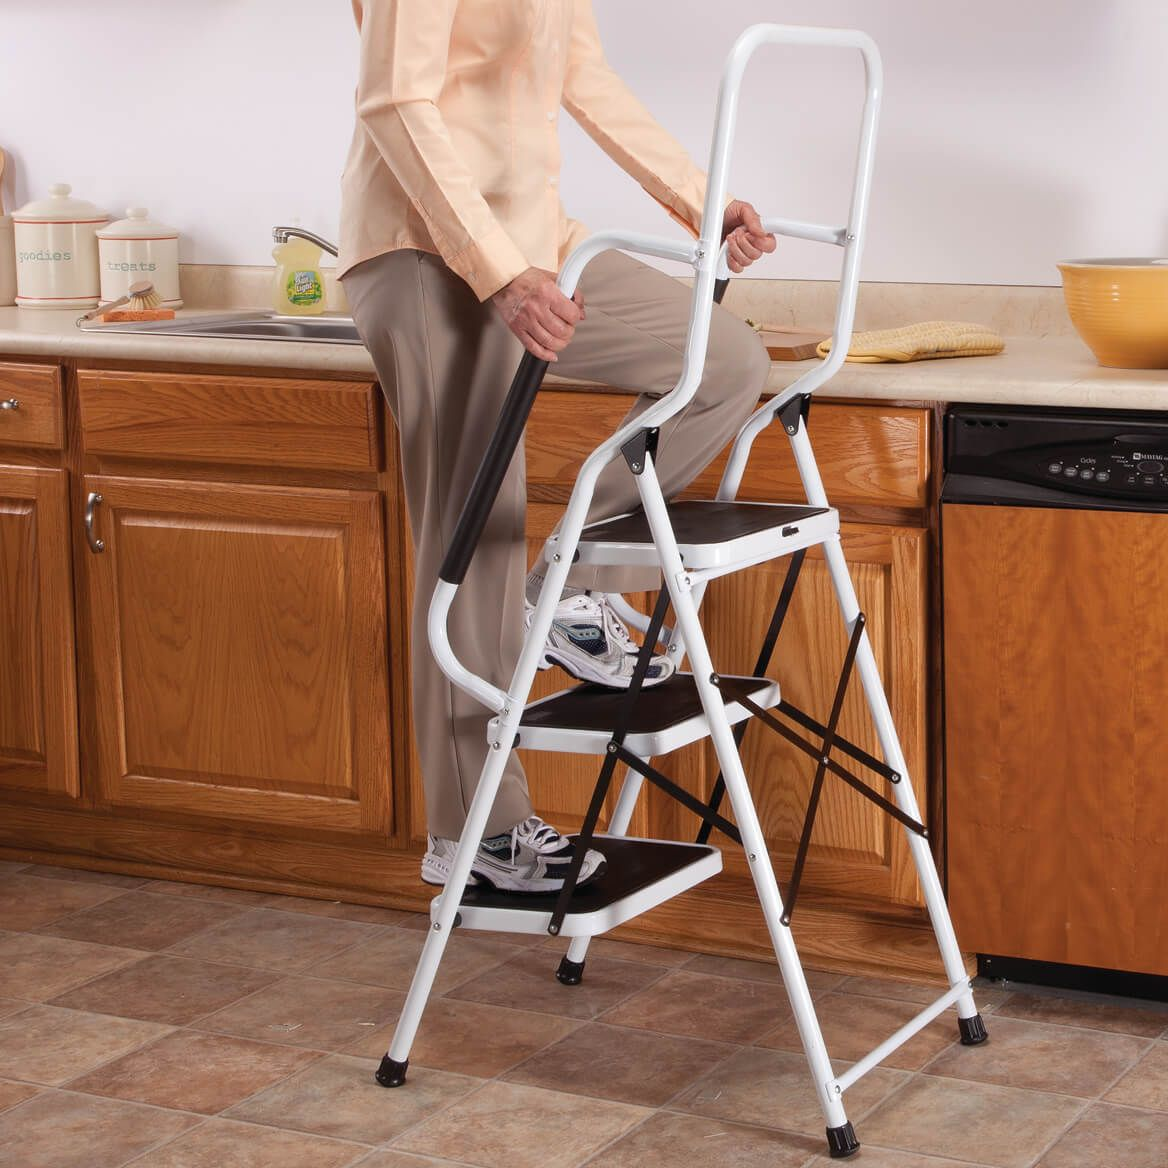 Step Ladder with Handles by LivingSURE™  XL-360948